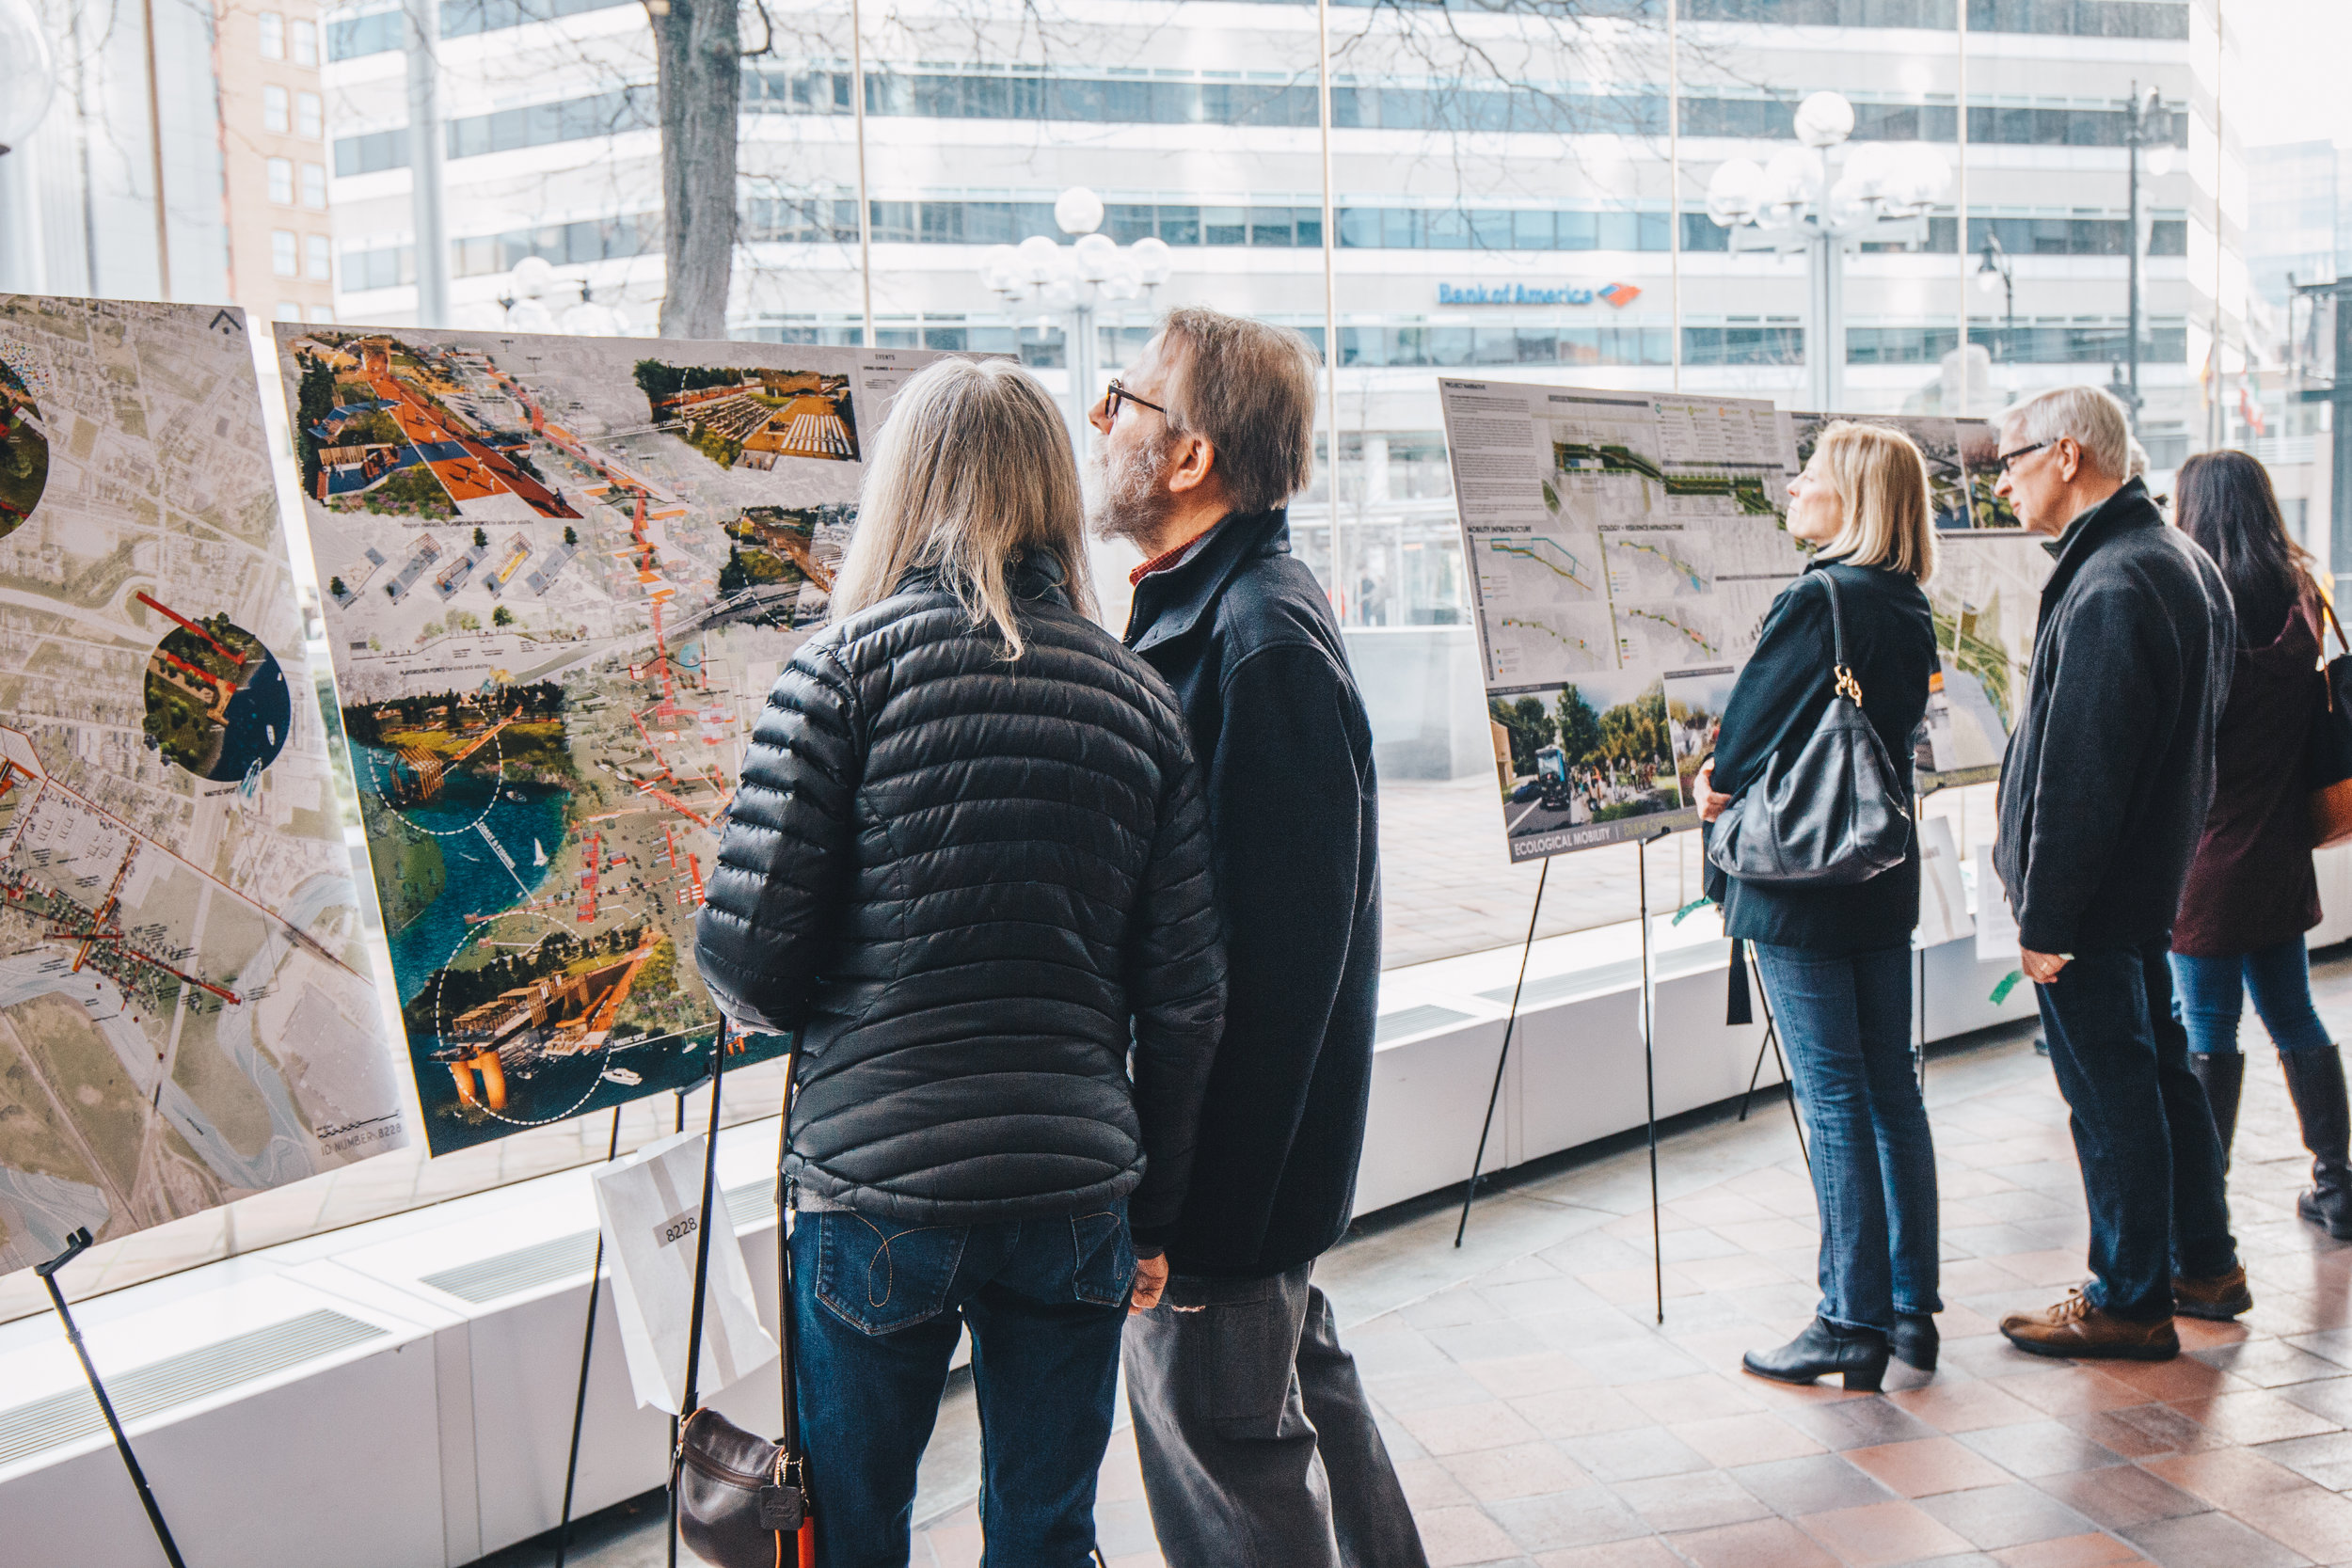 BUFFALO RISING: - WINNERS UNVEILED FOR DL&W CORRIDOR DESIGN IDEAS COMPETITION